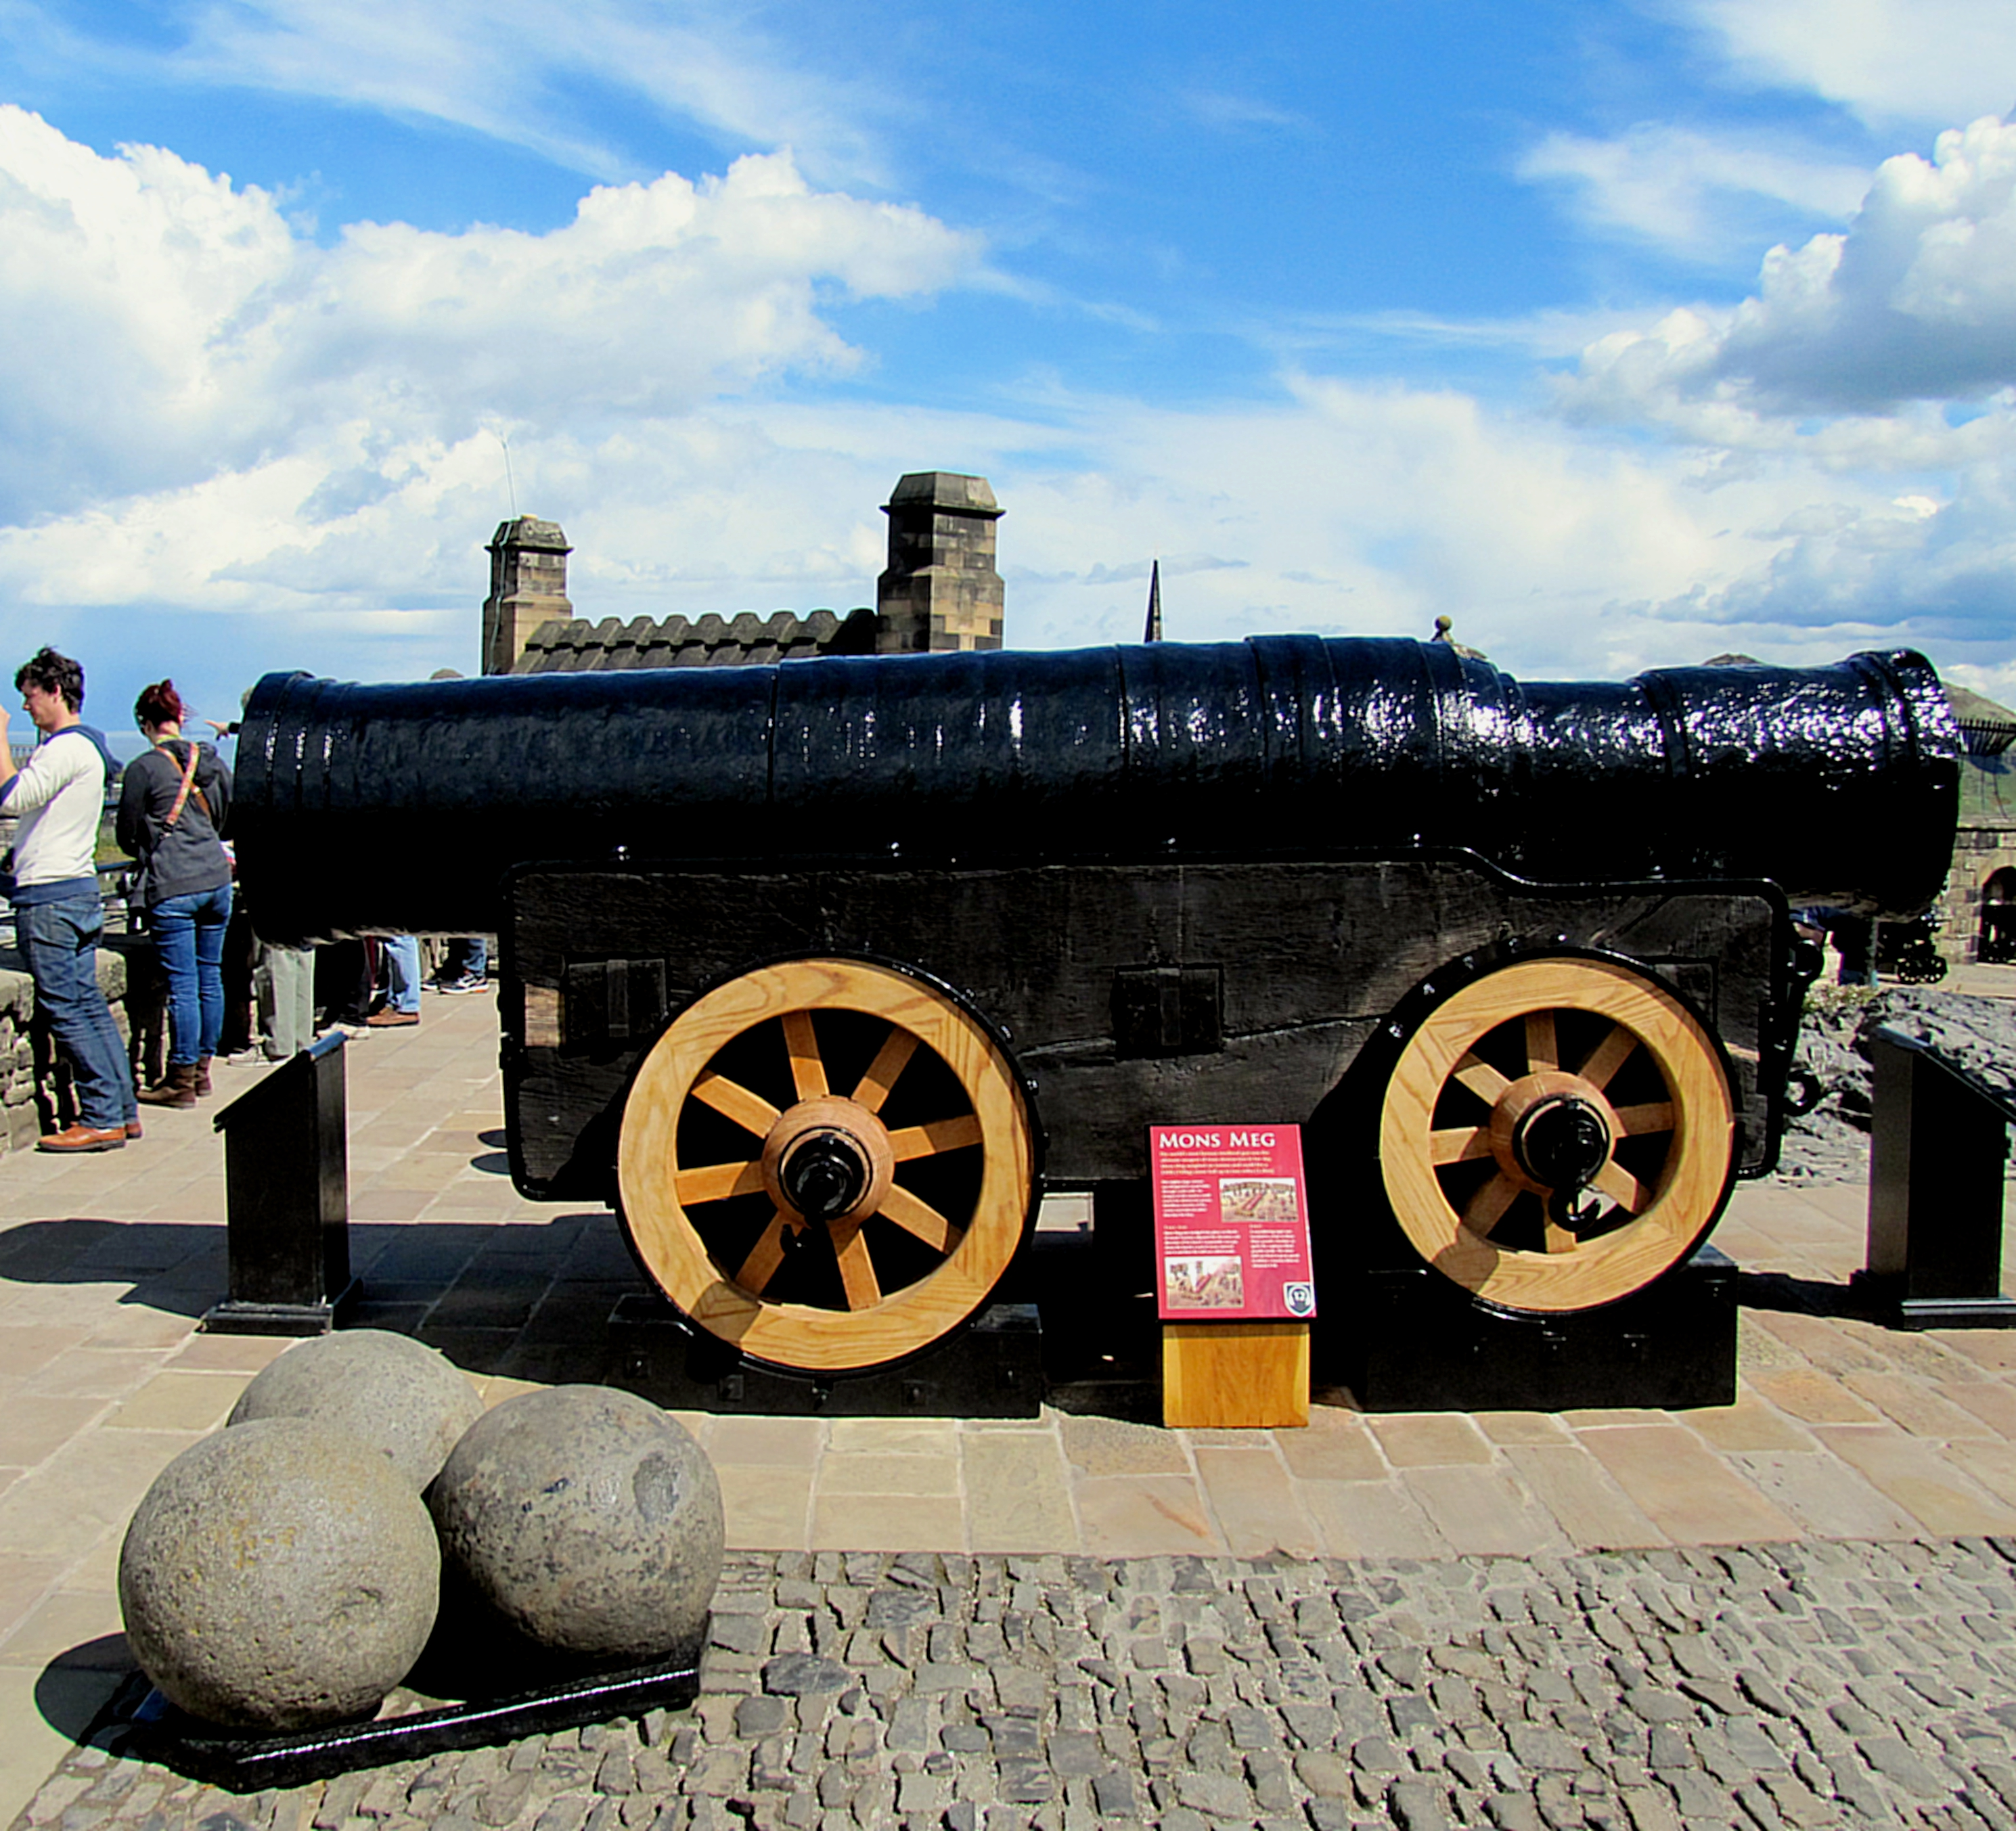 This is Mons Meg, a huge medieval bombard. It was transported using the wheels, but it would be dismounted and set into a trench in an earthworks to fire. It could lob one of those 330lb gun stones up to two miles.